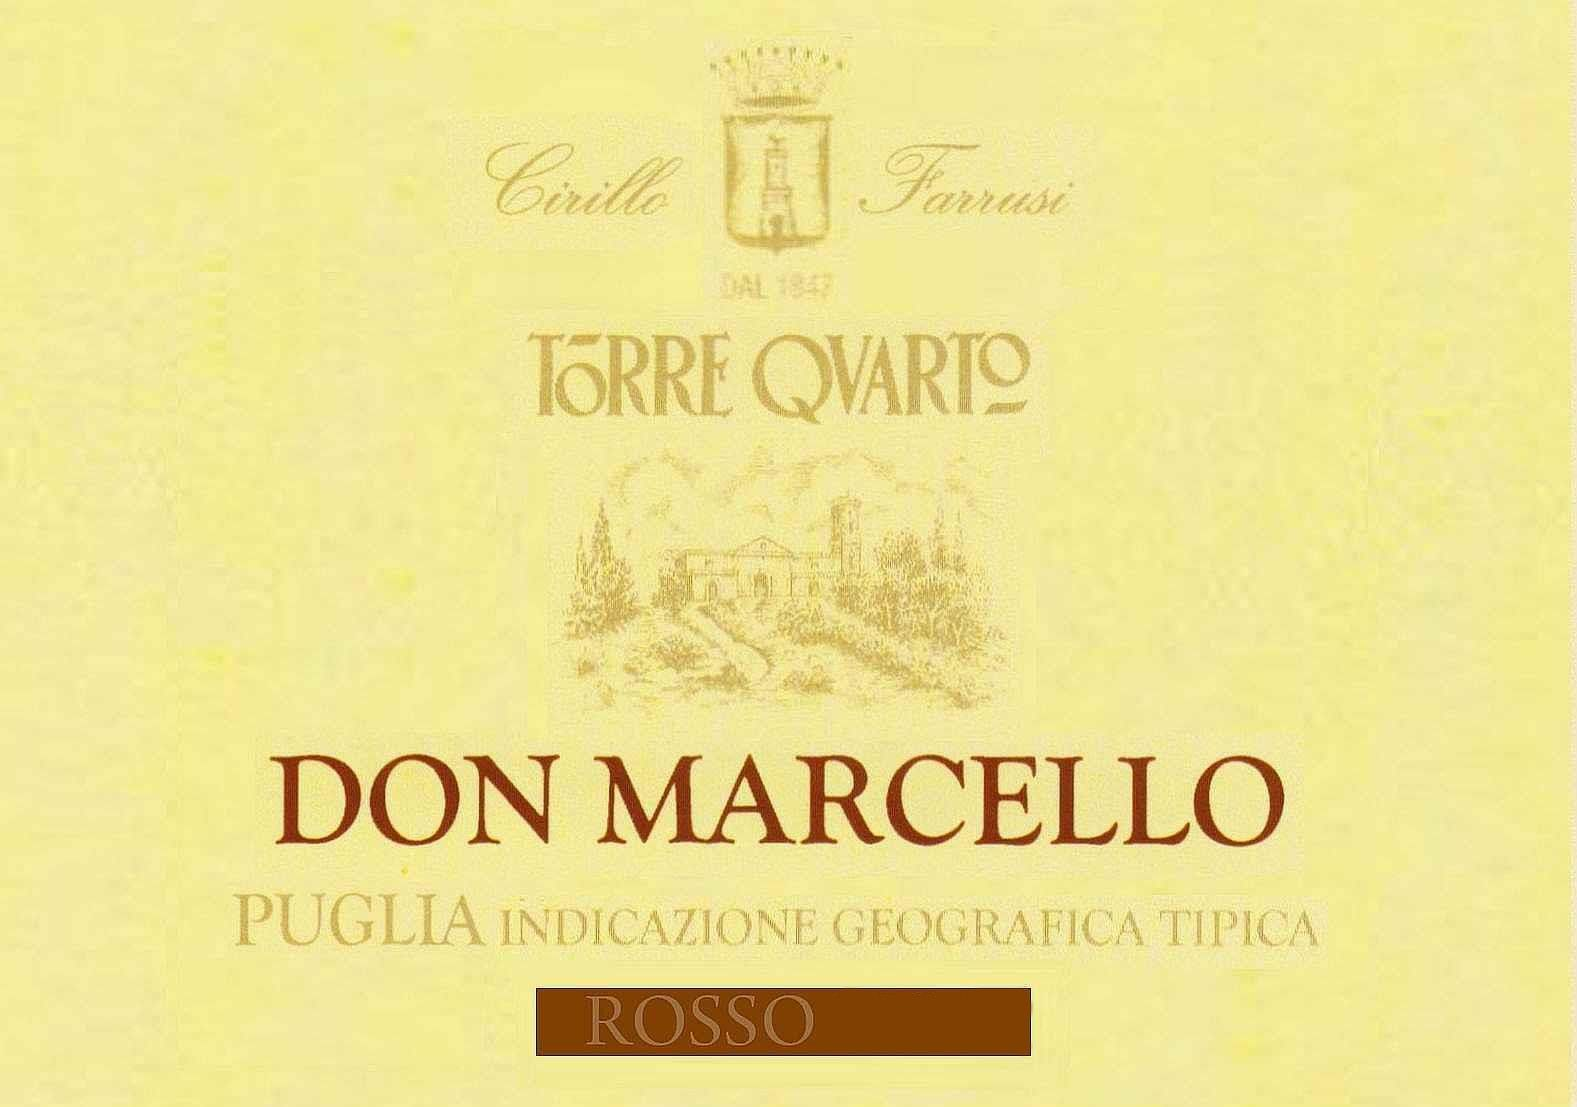 Torre Quarto Don Marcello Rosso 2010 Front Label